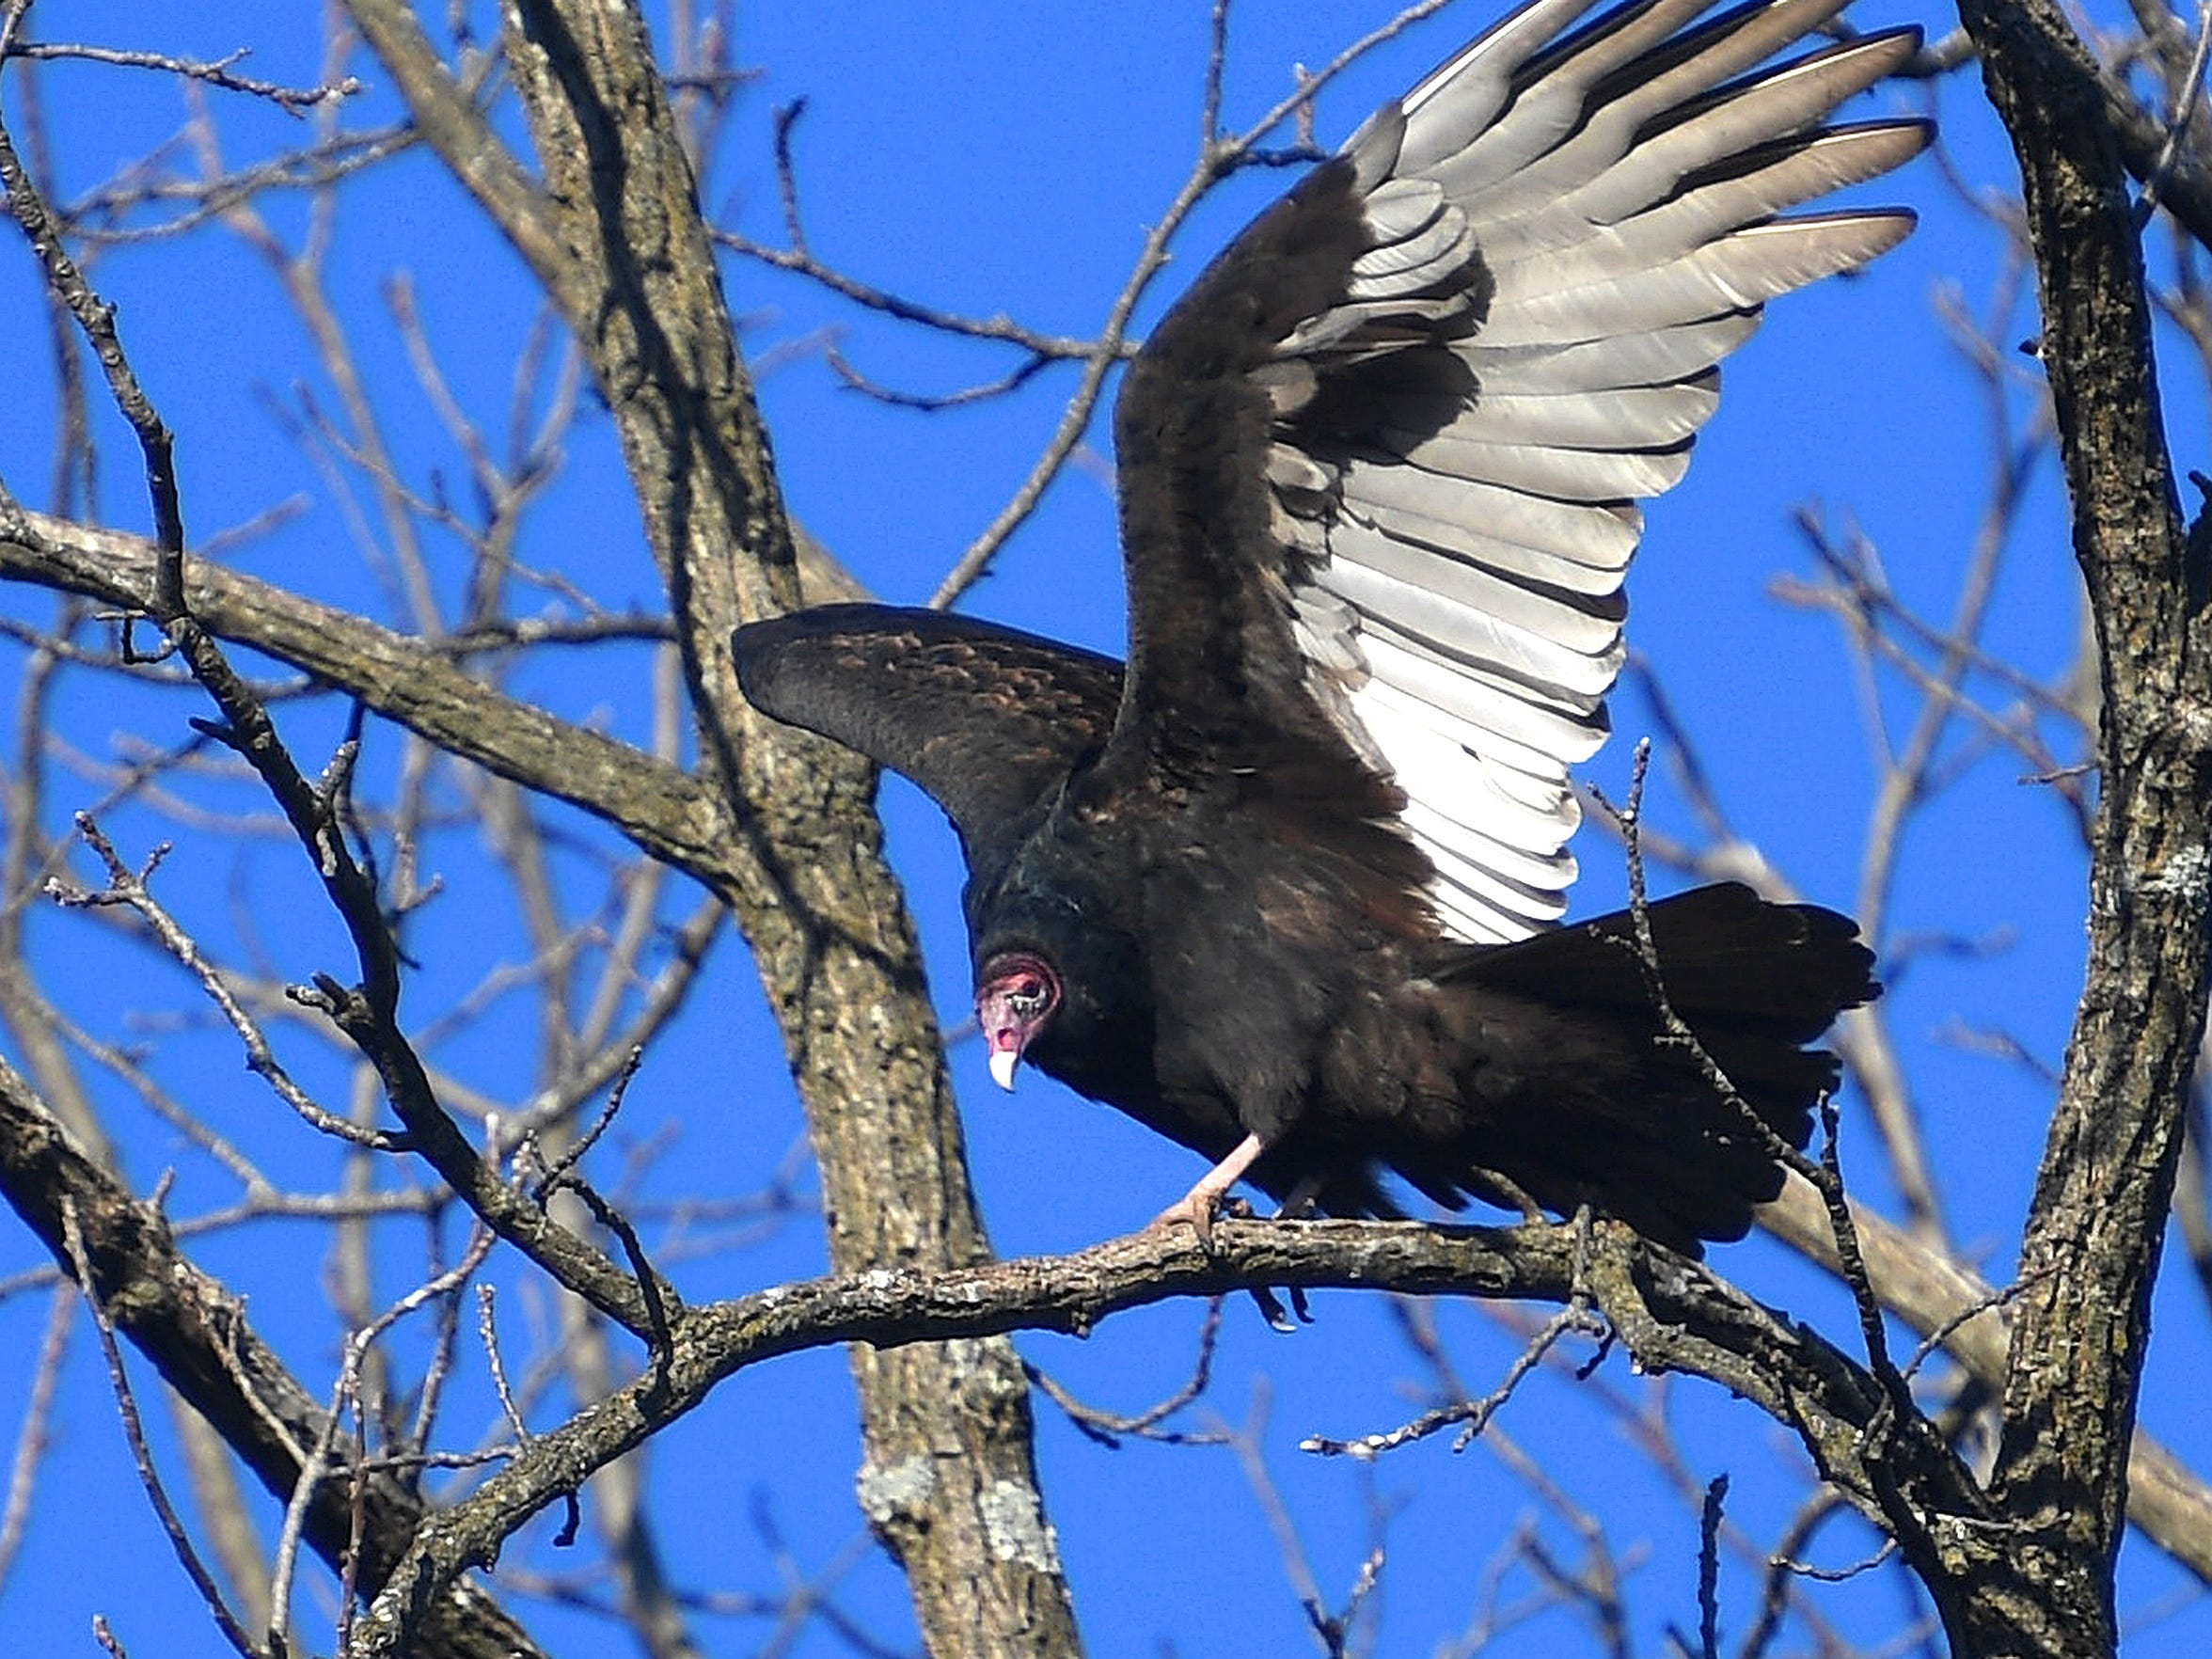 A turkey vulture spreads its wings in the warmth of the sun while perched in a tree visible from Fillmore Street in Staunton on Monday morning, Dec. 17, 2018.